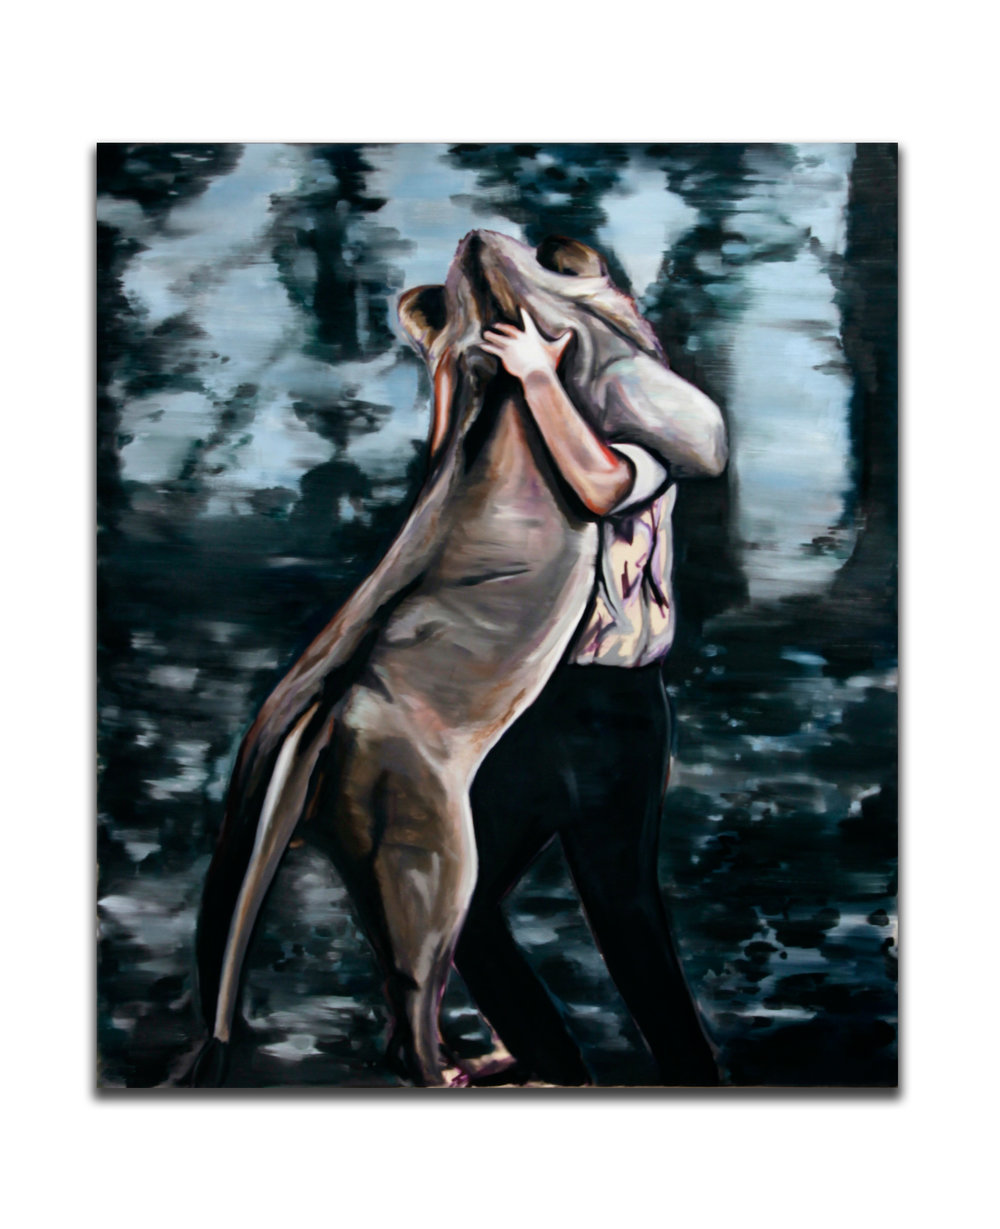 Embrace. Oil on canvas. 70 x 60 inches. 2008.